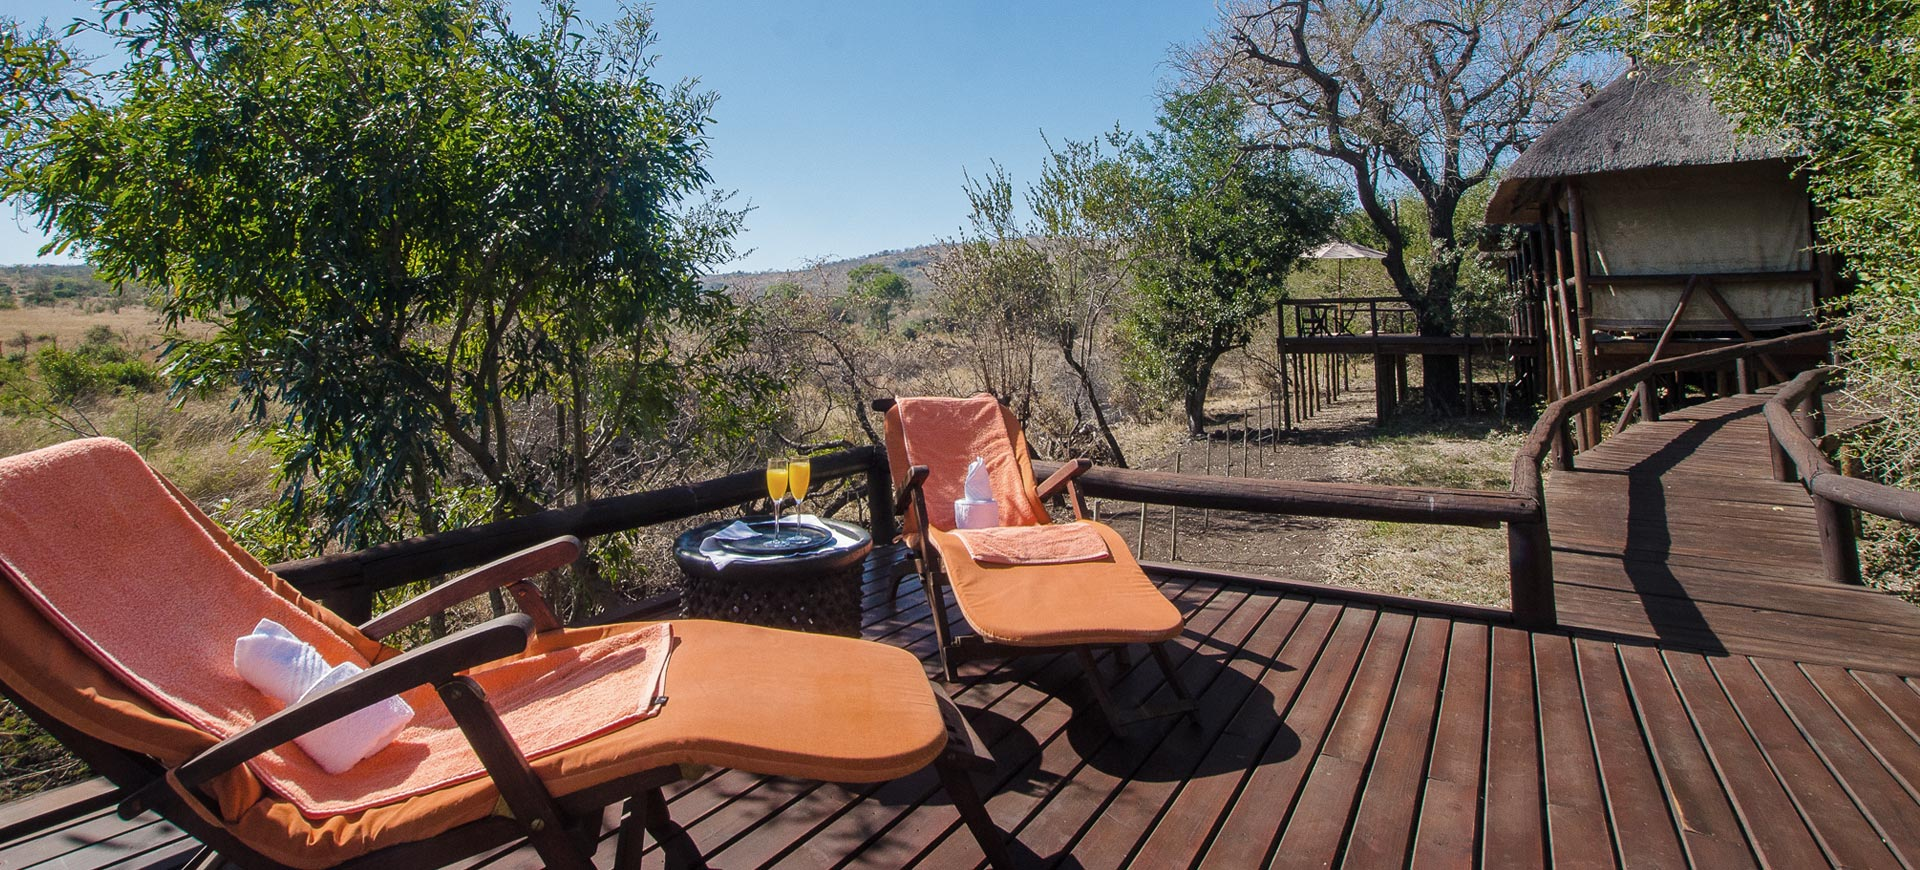 Camp Shonga In Kruger